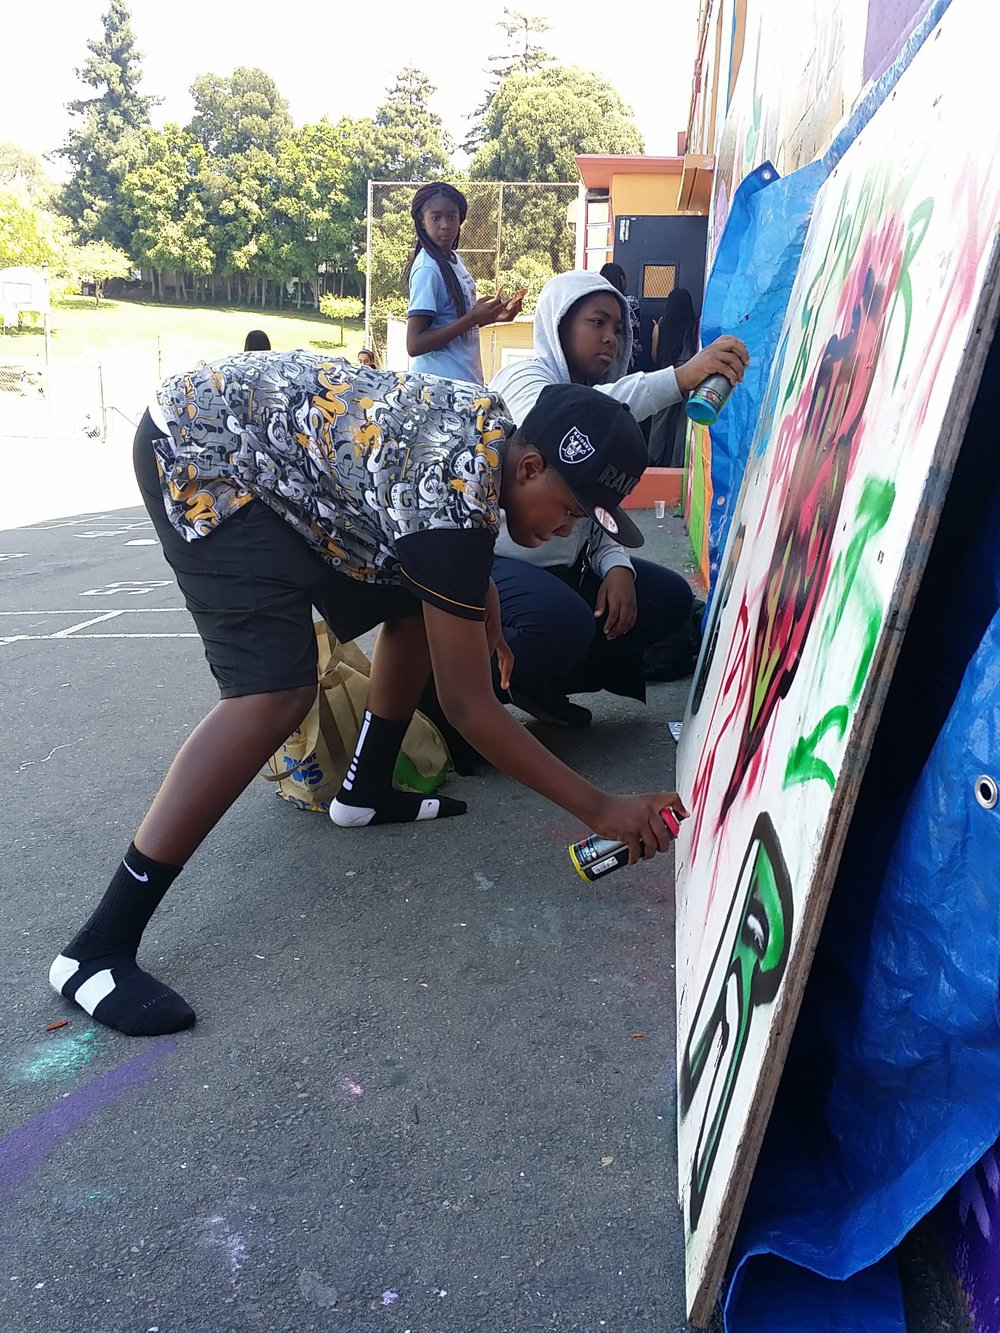 On the last day of Peace Camp students got to showcase their skills on a scrap wood board.